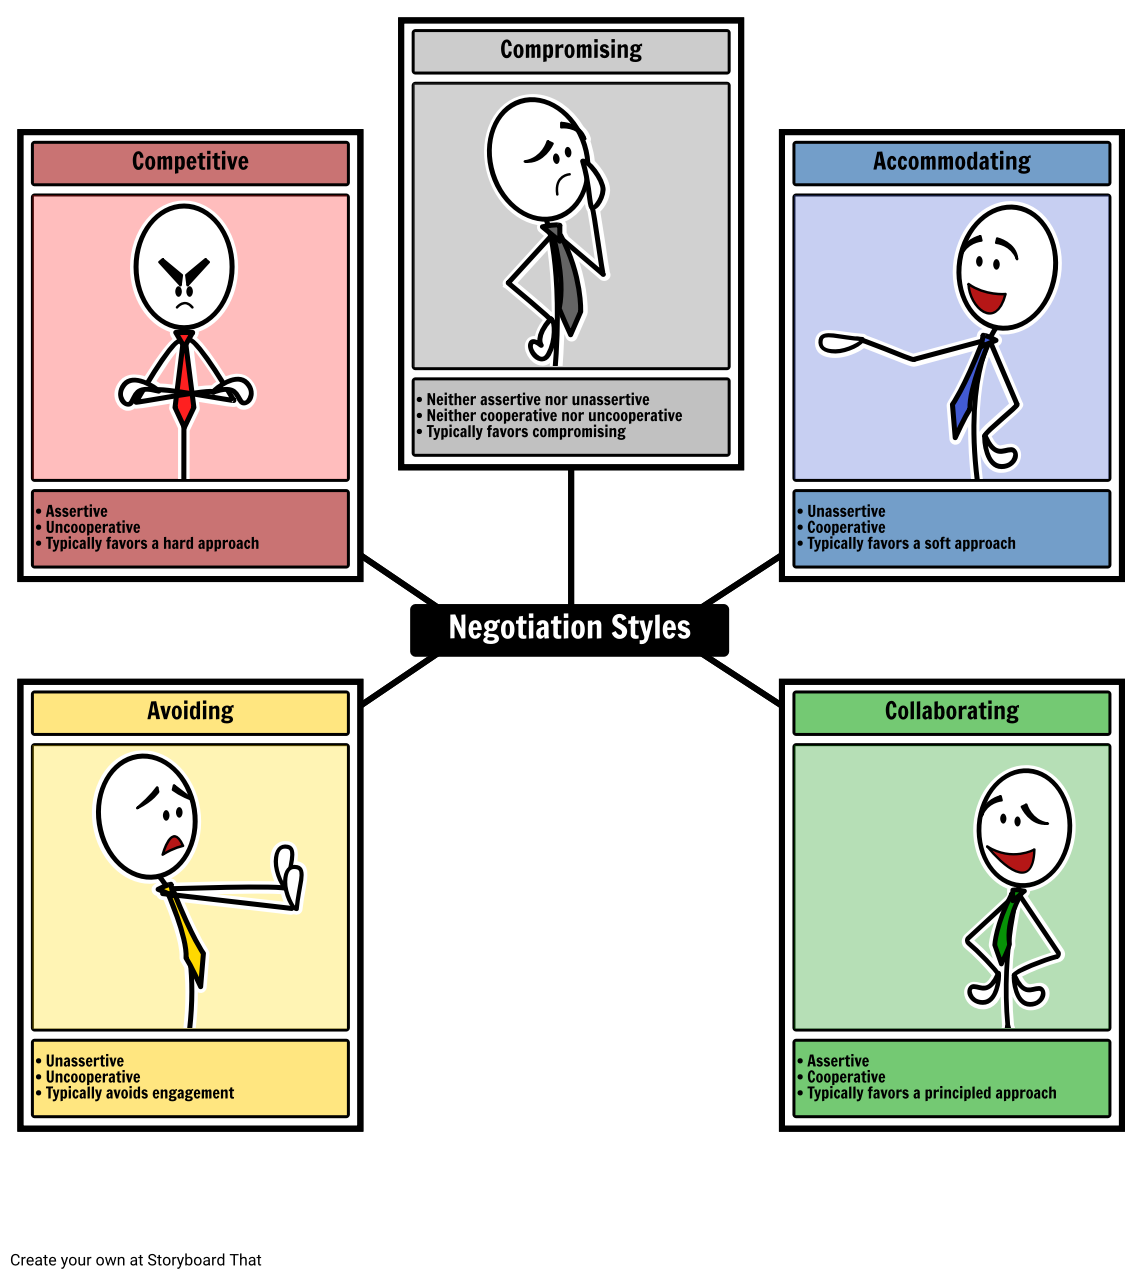 Comparetion of commercial negotiations style between